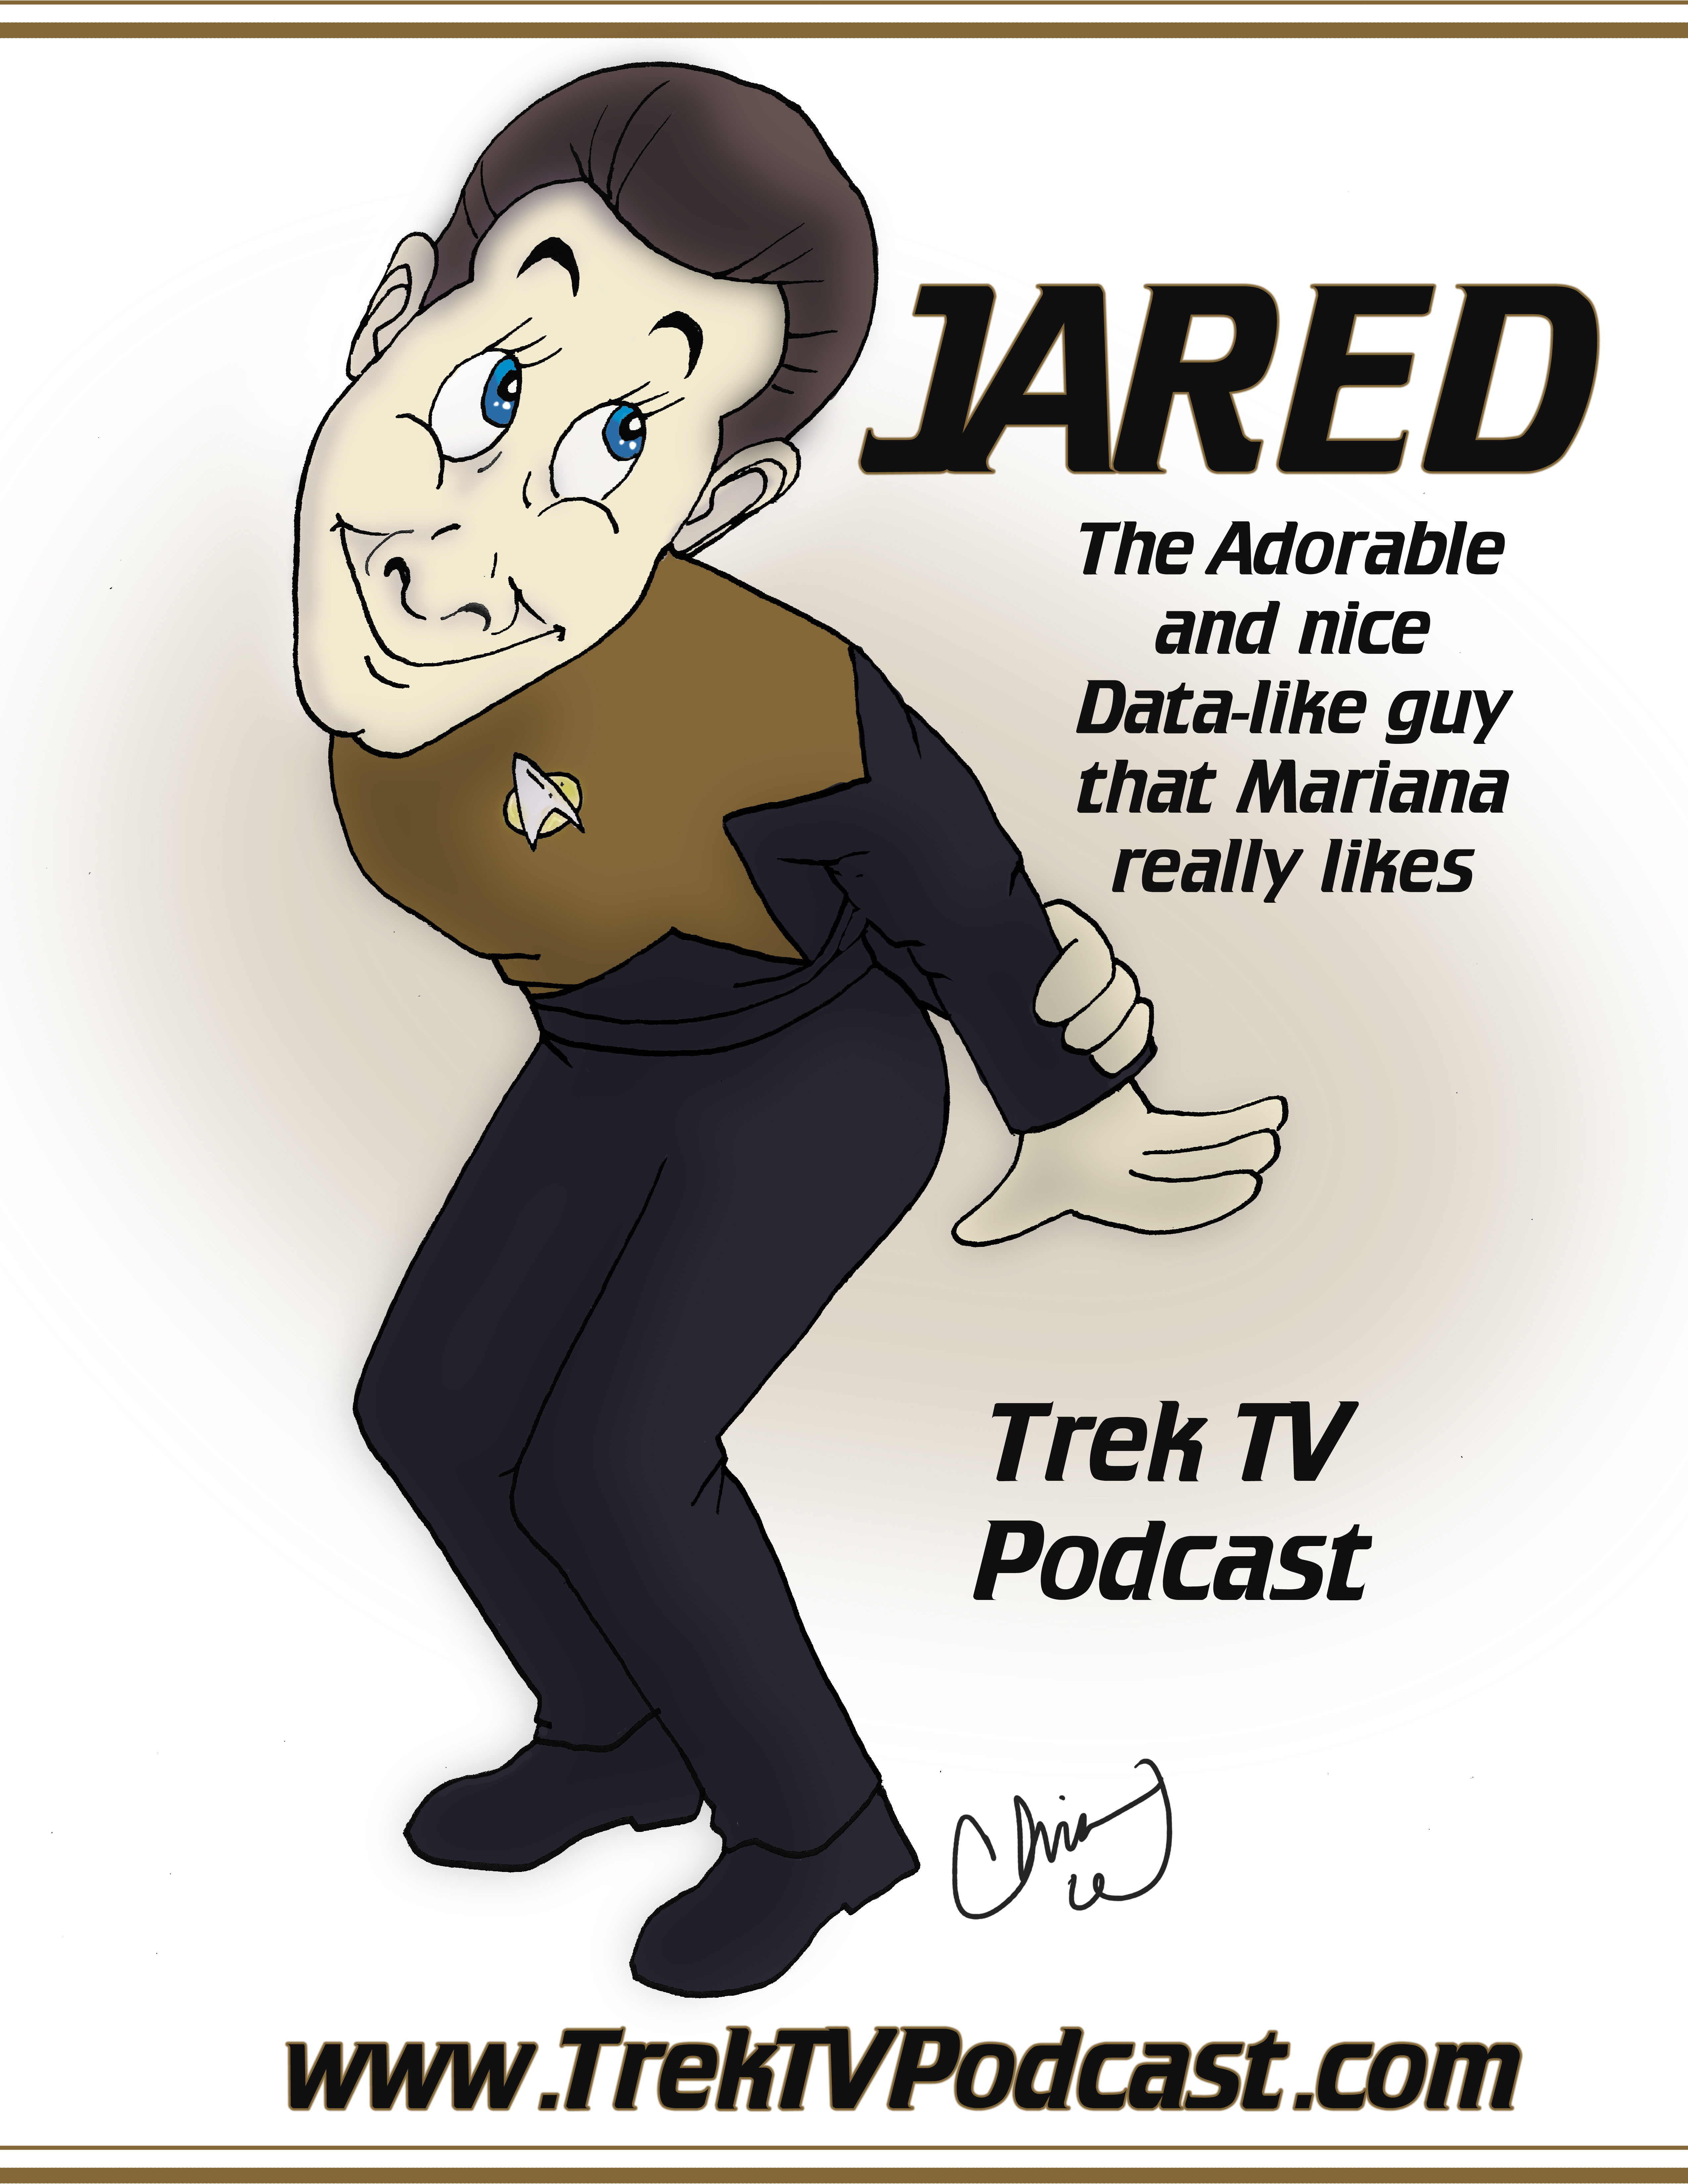 "Attached is my rendition of Jared according to Mariana's description from the ""Final Mission"" episode (Episode 178.) Since Mariana stated that Jared resembled Data, I did so with my fanart. I also gave him blue eyes since Mariana stated she liked Riker's eyes, and Data's eye color is almost certainly not that of Jared's. I hope you all like it"